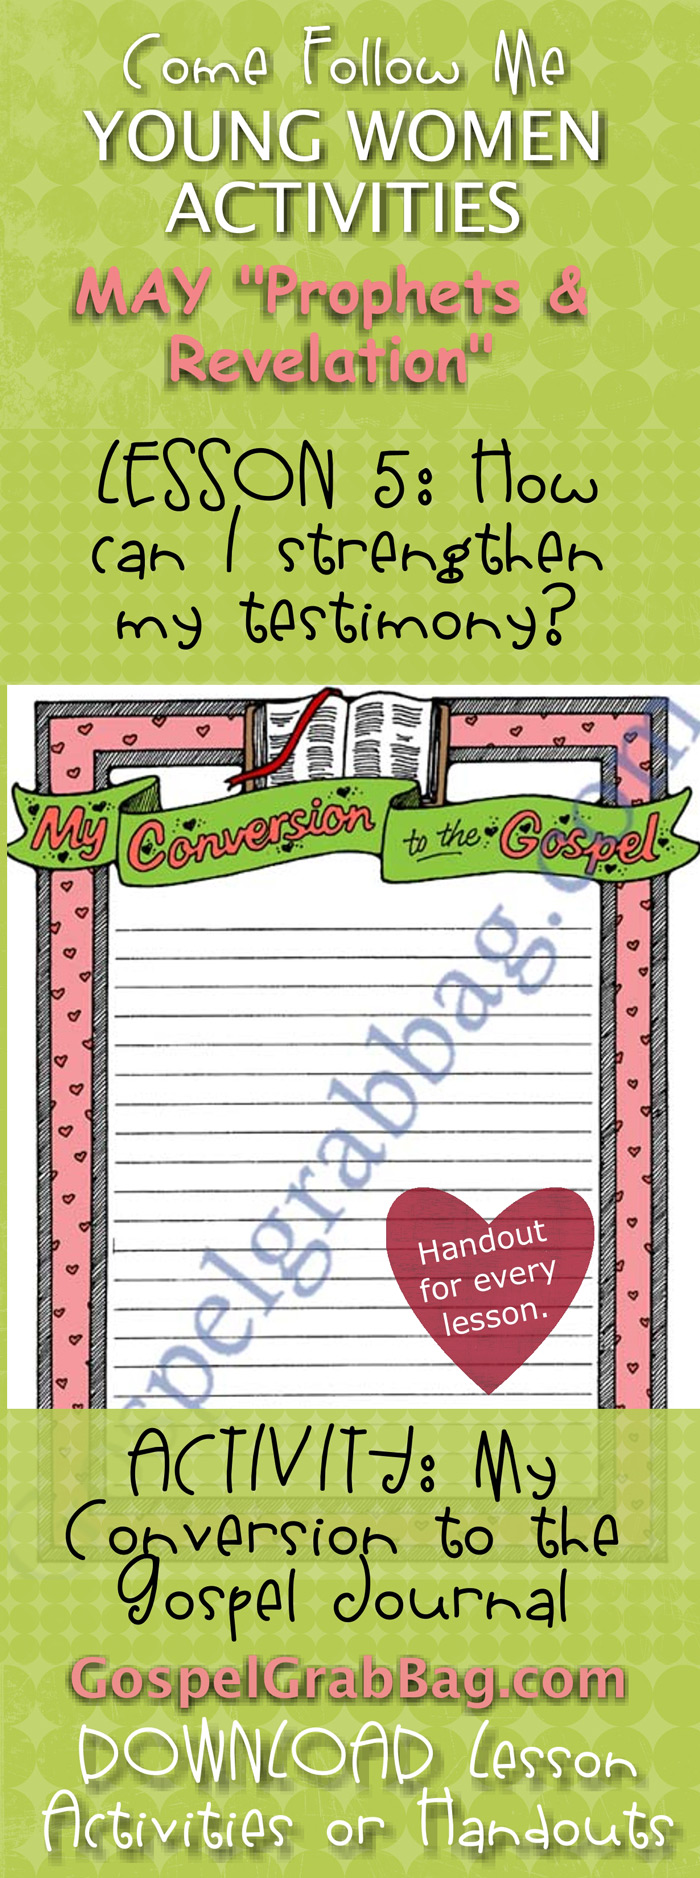 "TESTIMONY – MISSIONARY WORK: Come Follow Me – LDS Young Women Activities, MAY Theme: ""Prophets and Revelation"", LESSON 5: How can I strengthen my testimony? Lesson handouts and activities, ACTIVITY: My Conversion to the Gospel Journal, download from gospelgrabbag.com"